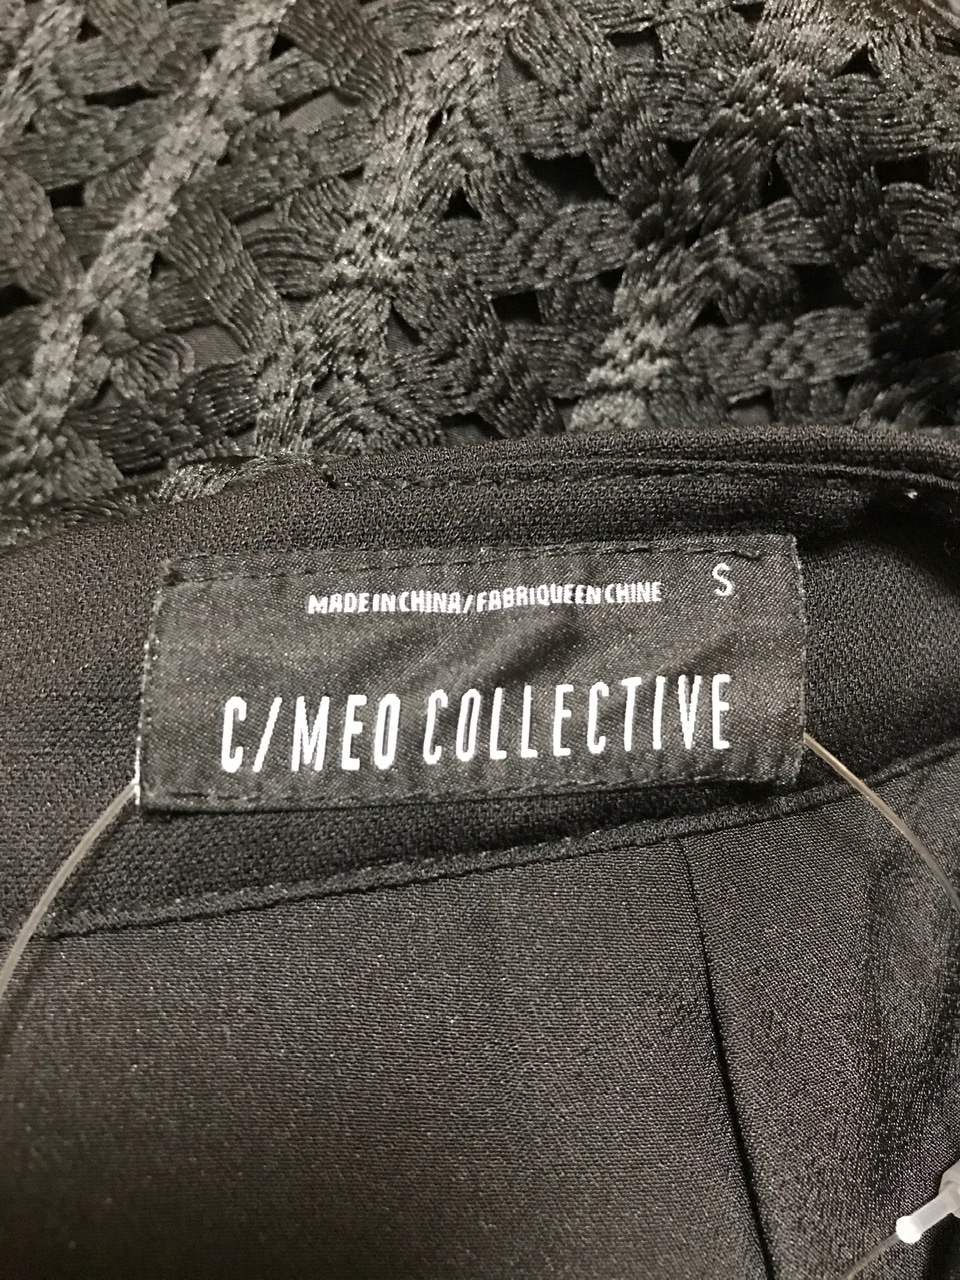 C/MEO COLLECTIVE(カメオコレクティブ)のスカート